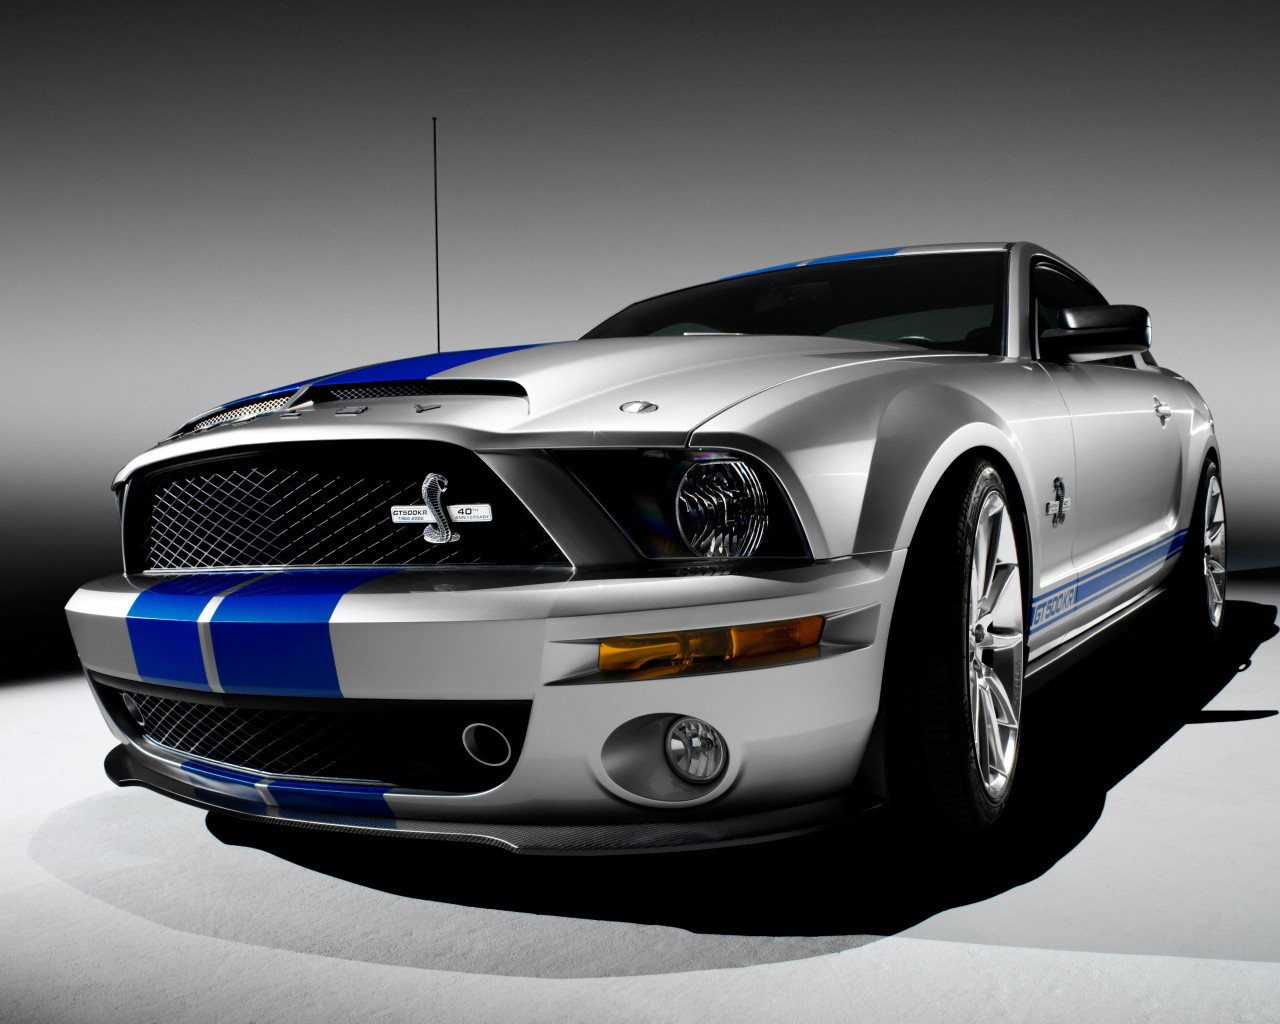 Shelby Mustang GT500KR Wallpaper for Desktop 1280x1024